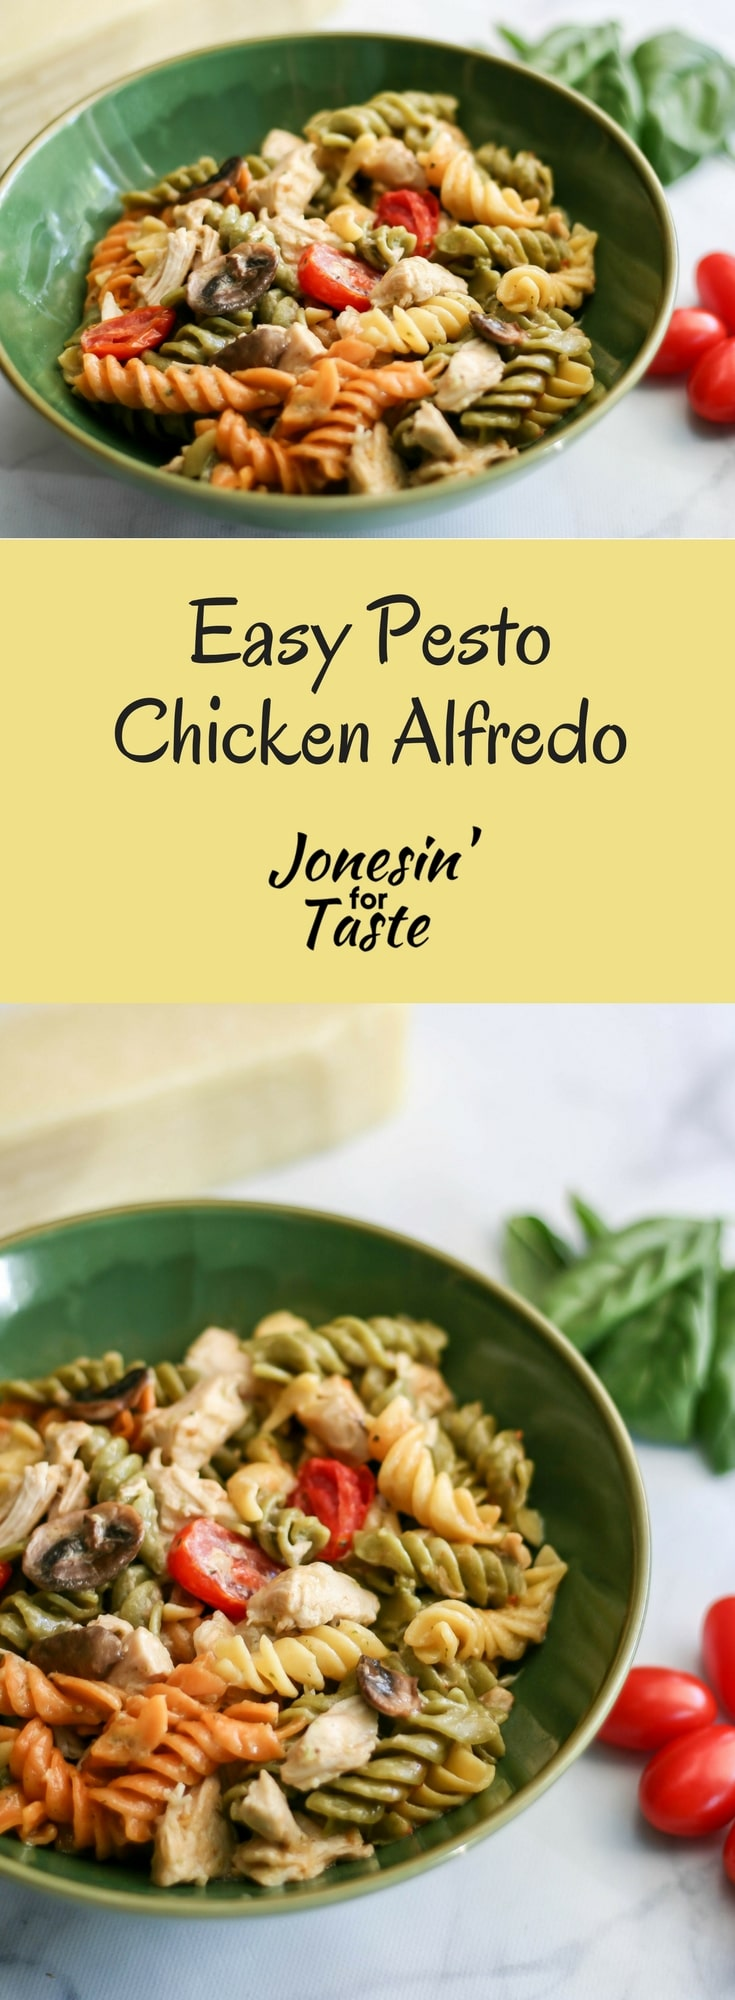 Easy Pesto Chicken Alfredo uses rotisserie chicken combined with pesto and alfredo sauce for a quick dinner packed with lots of flavor. #jonesinfortaste #easypastarecipes #pestopasta